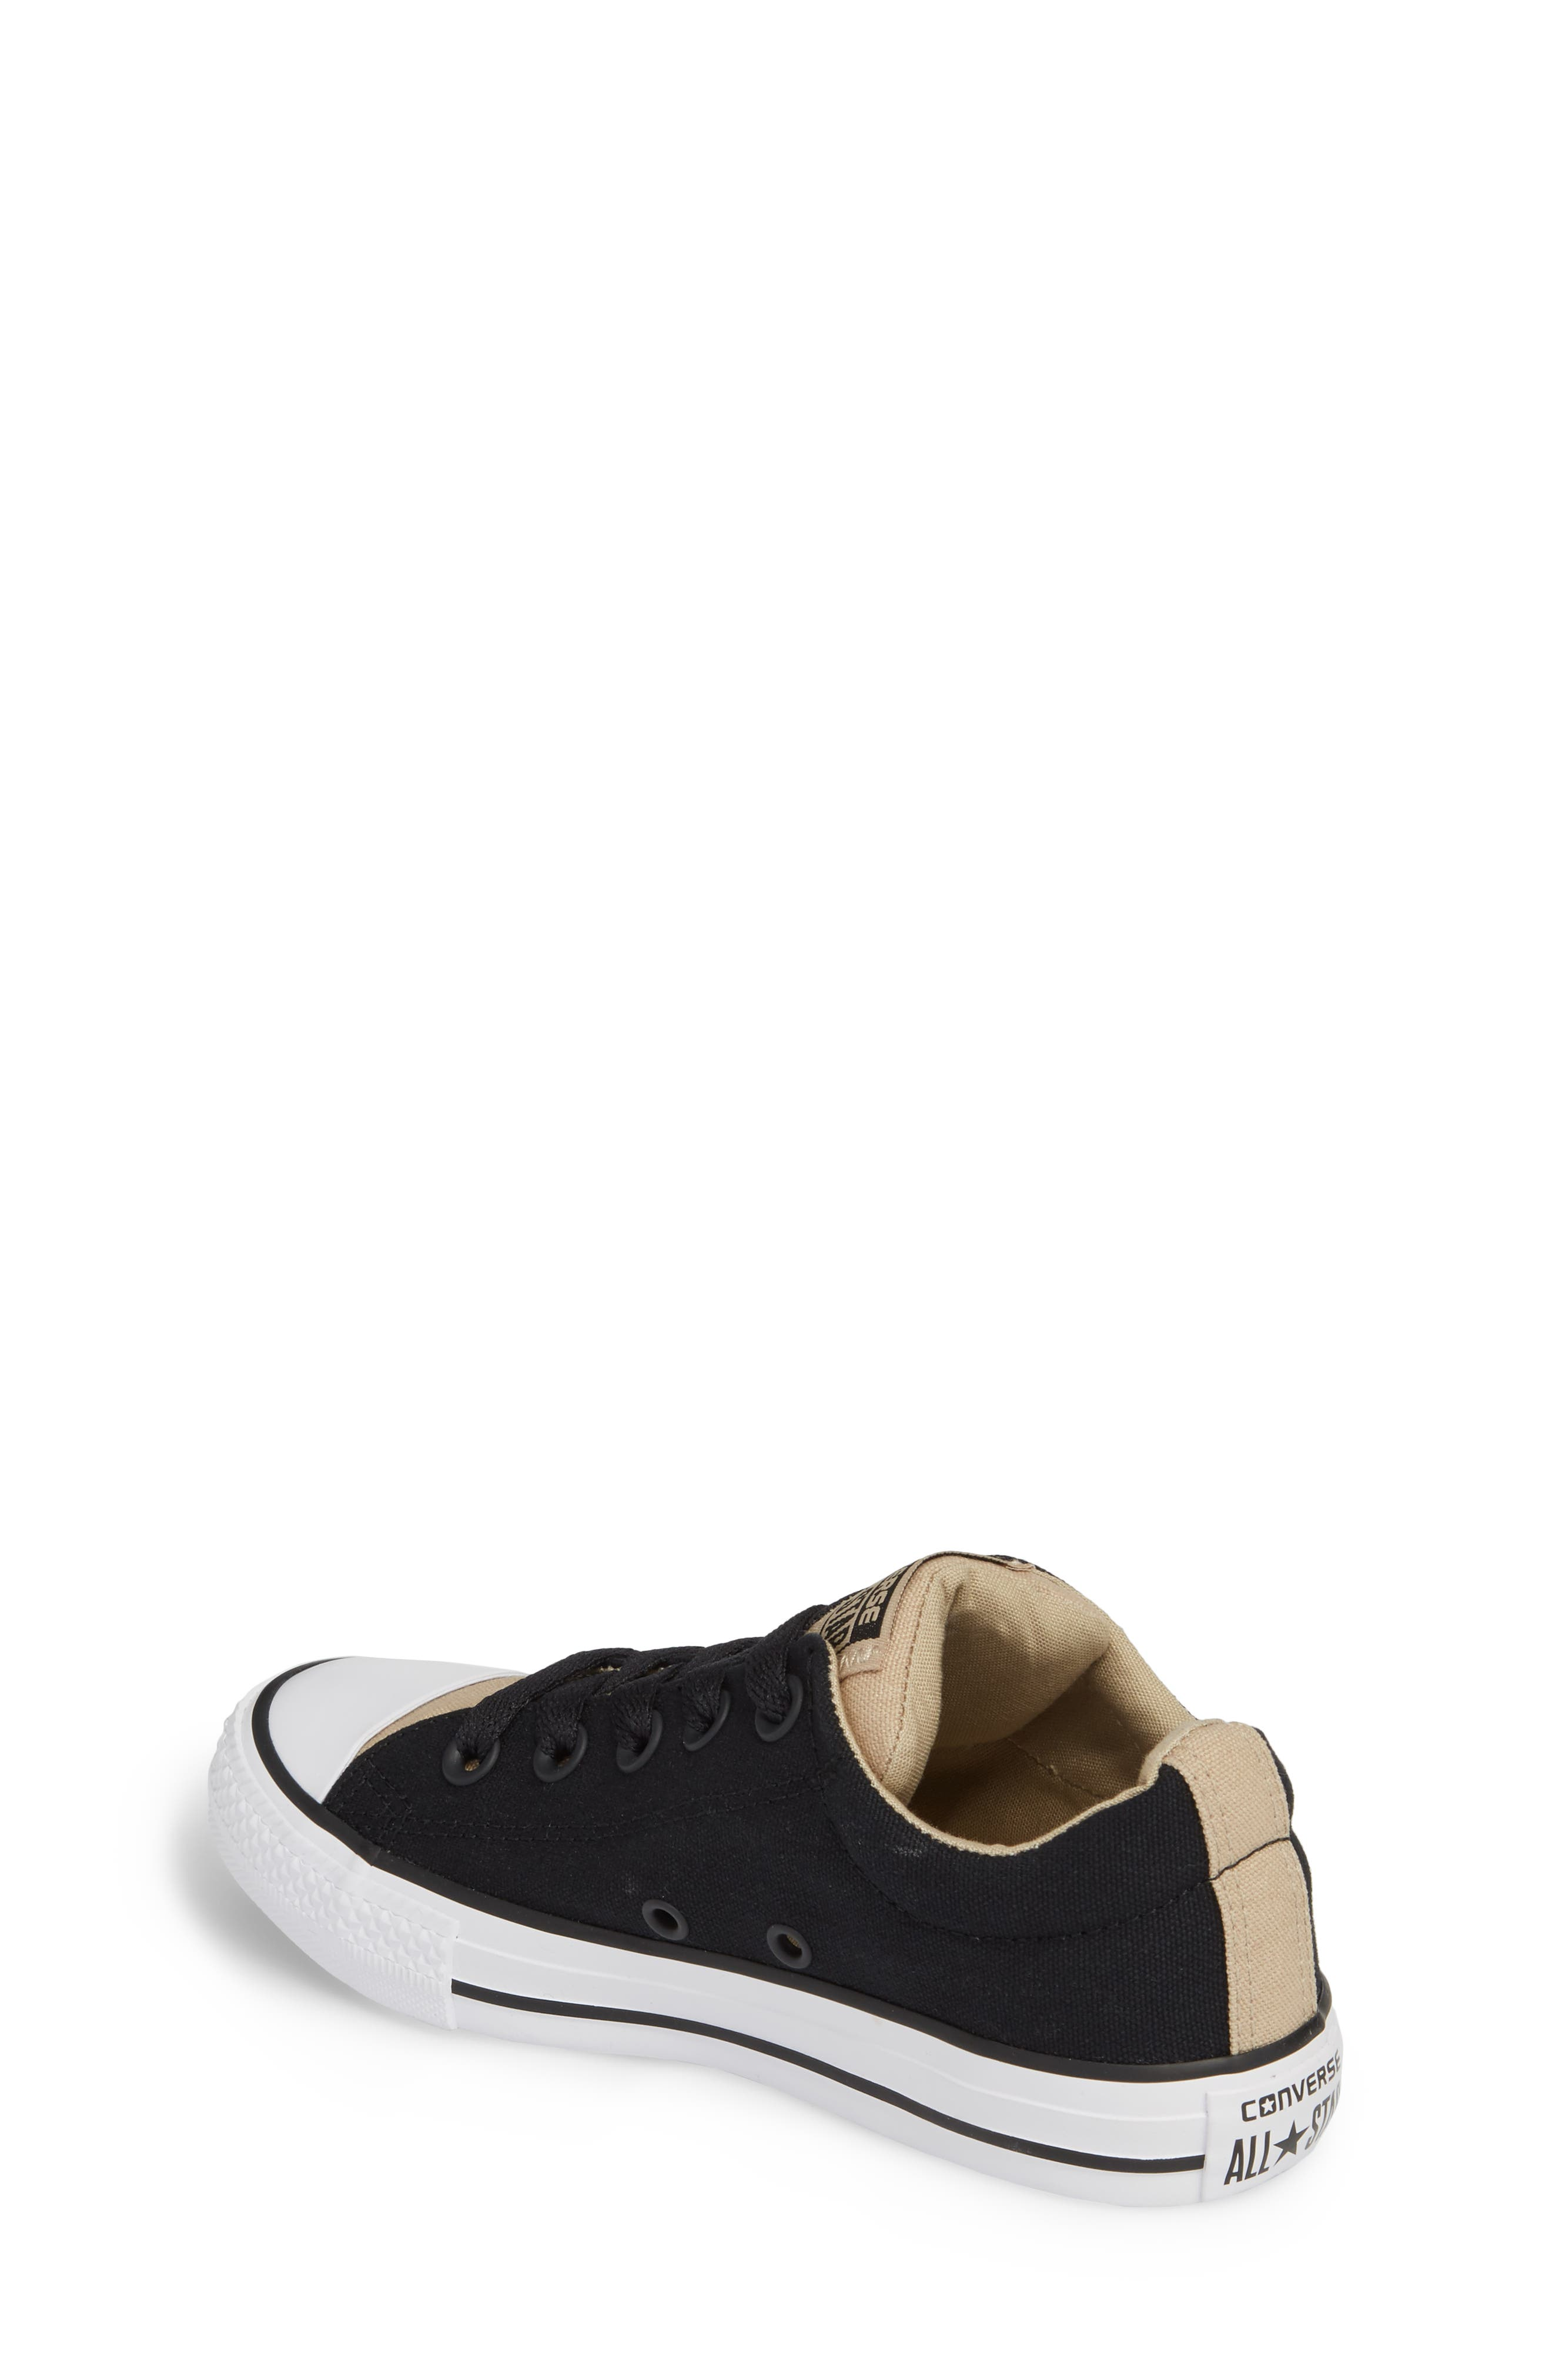 All Star<sup>®</sup> Street Slip Low Top Sneaker,                             Alternate thumbnail 2, color,                             001